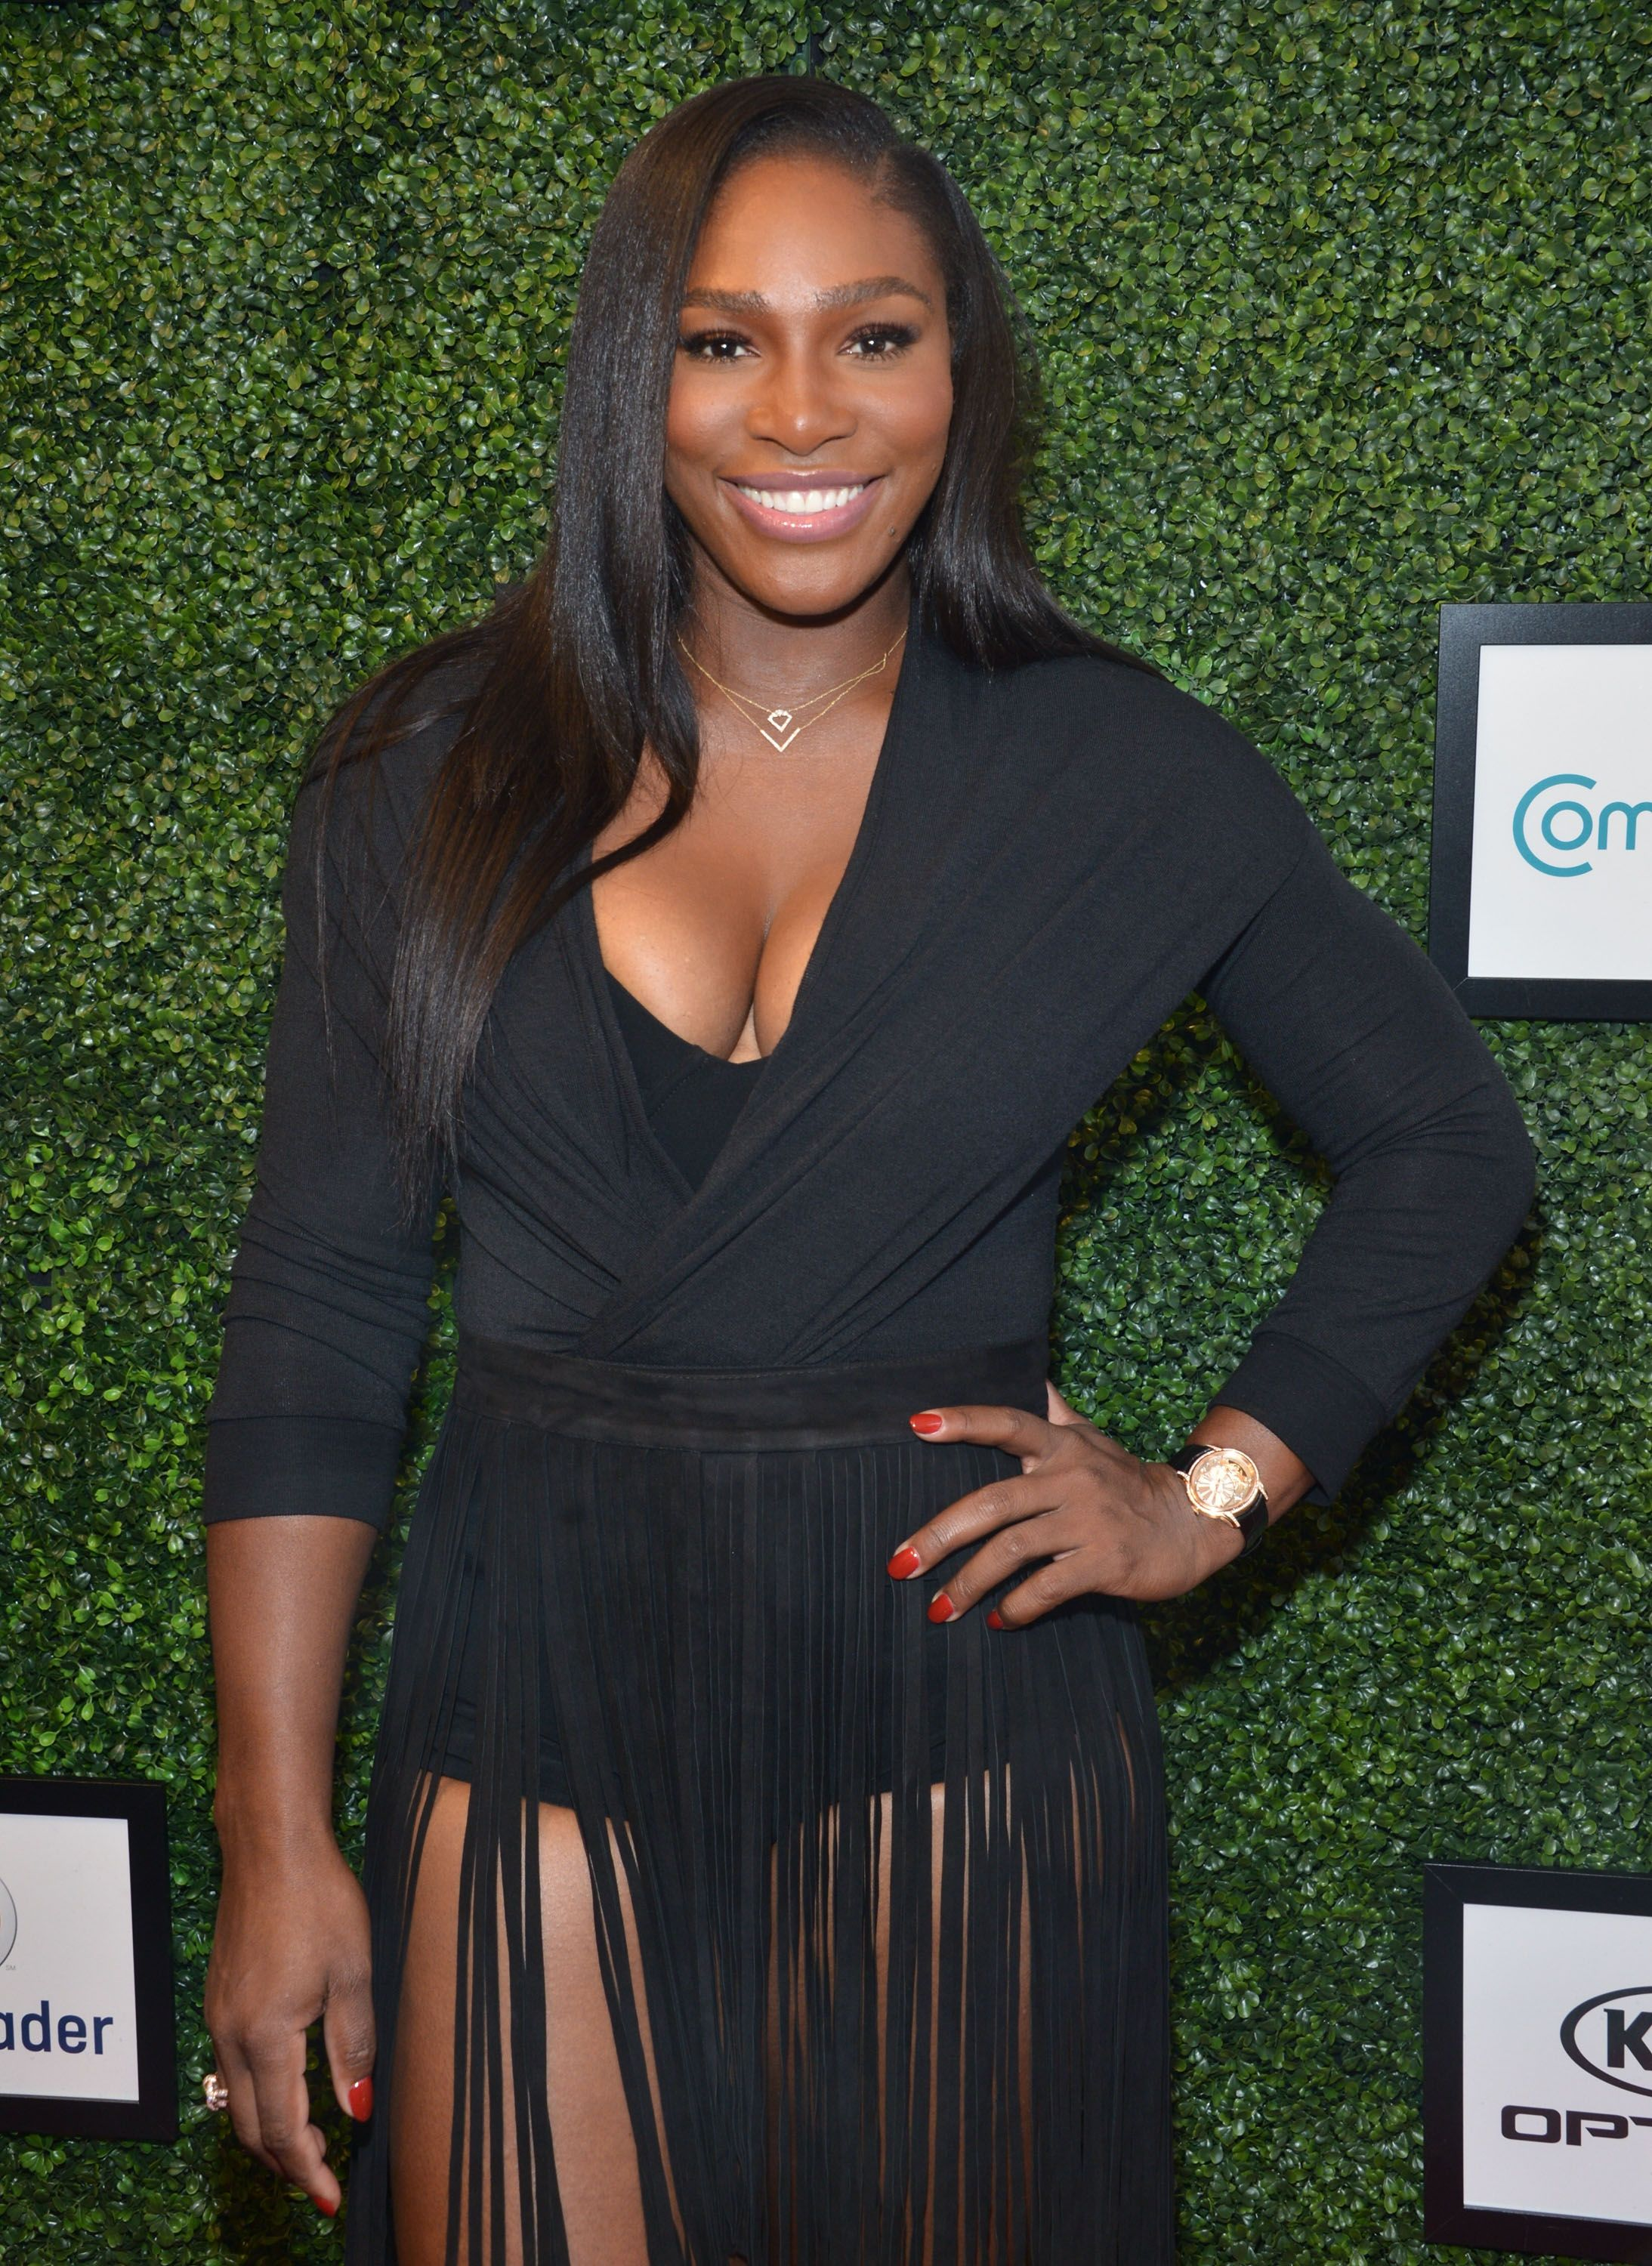 Serena Willams at the Serena Williams Signature Statement show on September 15, 2015.    Photo: Getty Images